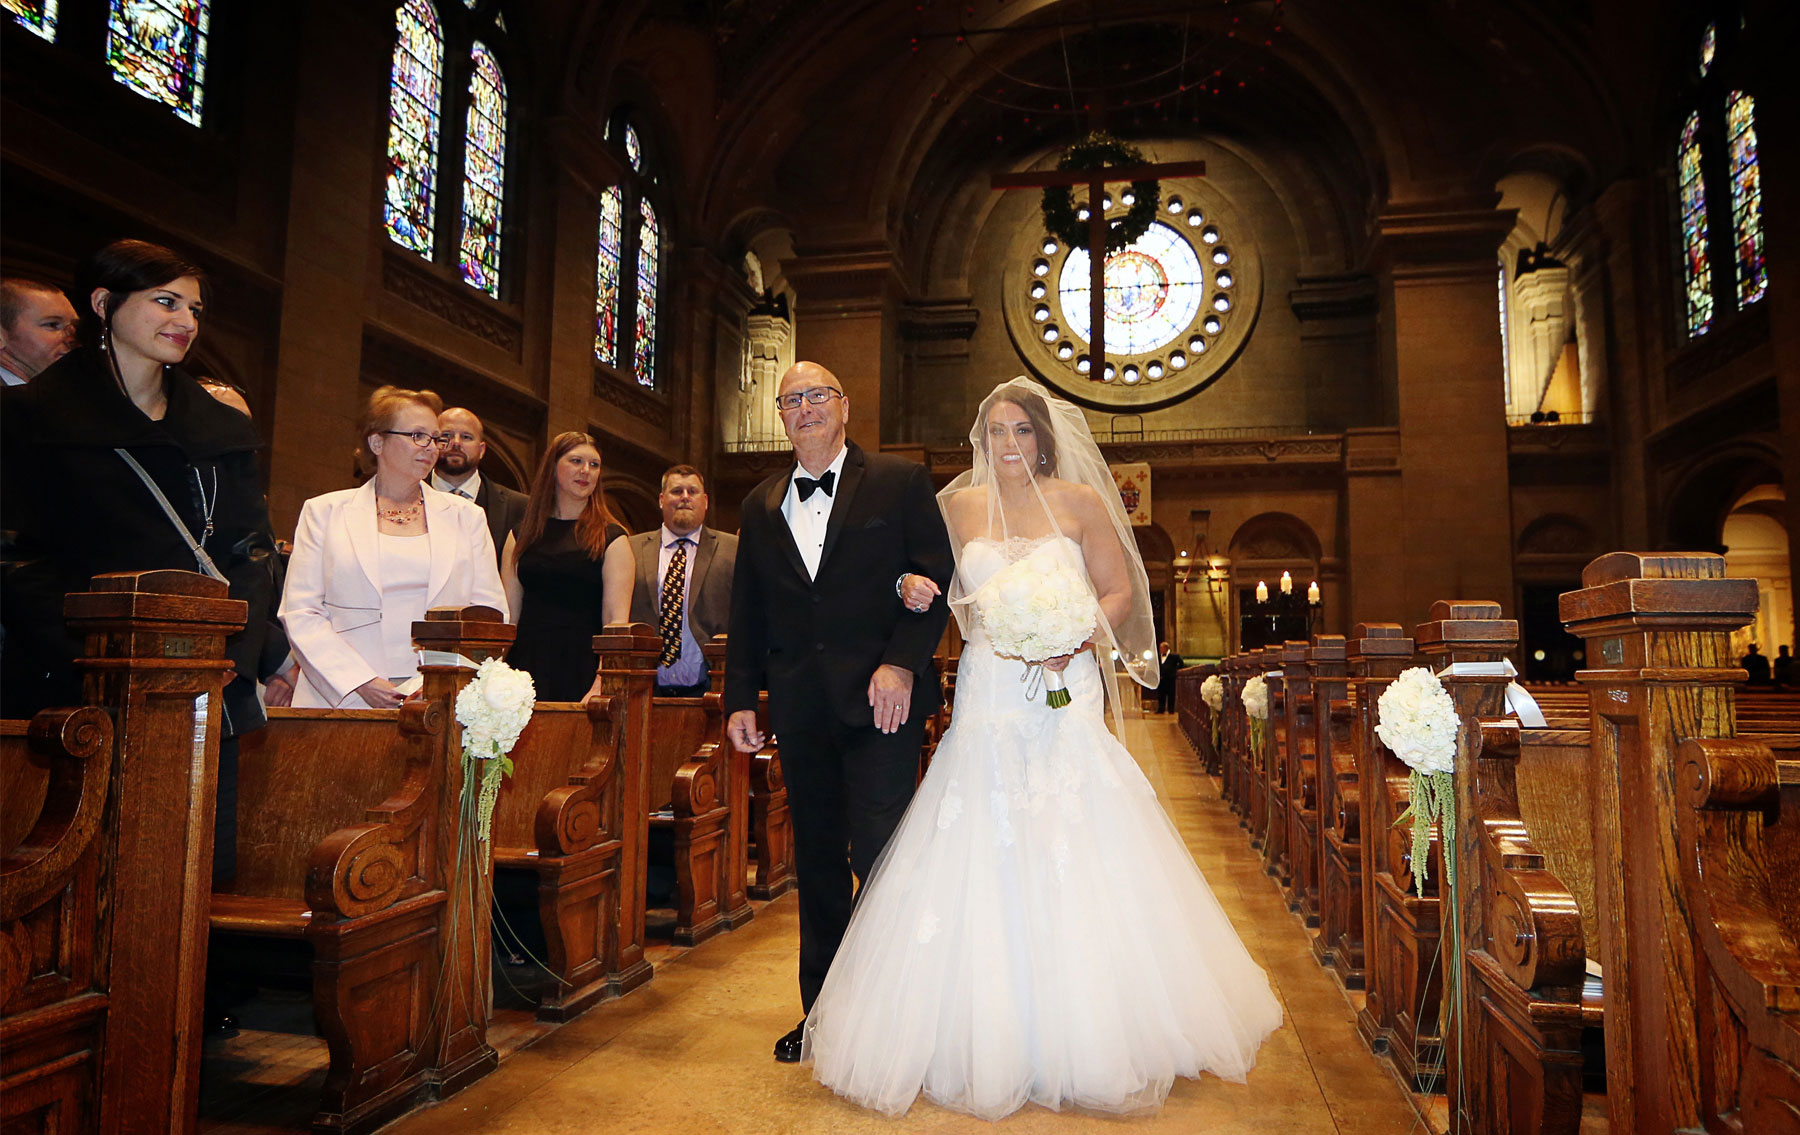 09-Minneapolis-Minnesota-Wedding-Photography-by-Vick-Photography-Downtown-Basilica-of-St-Marys-Church-Ceremony-Megan-and-Andrew.jpg